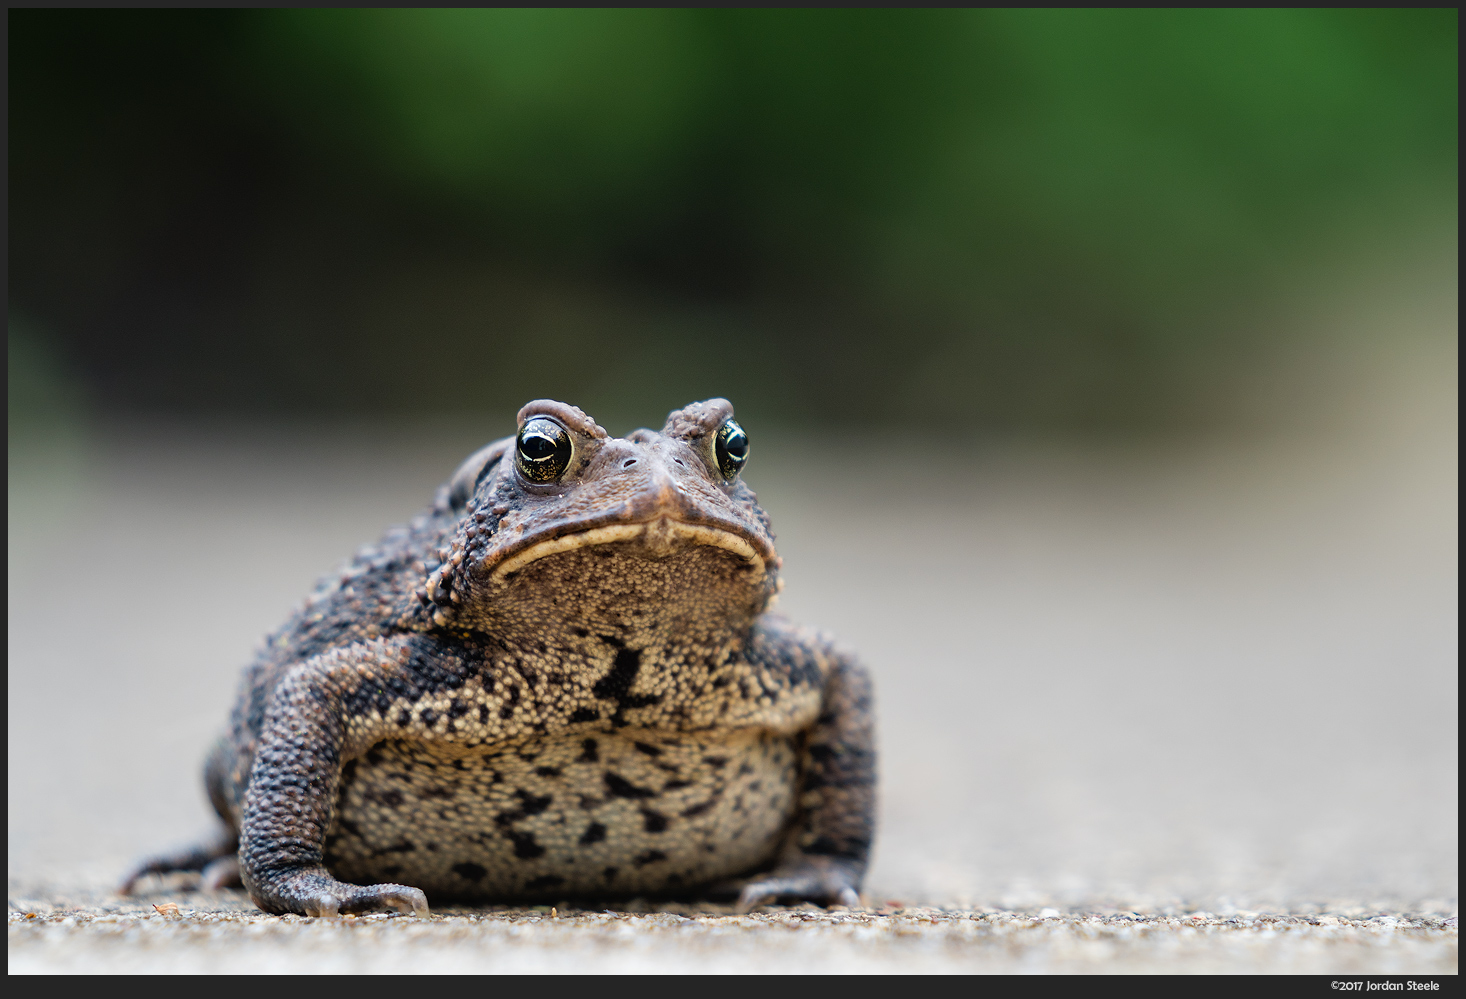 Toad - Sony A9 with Sony FE 70-200mm f/2.8 @